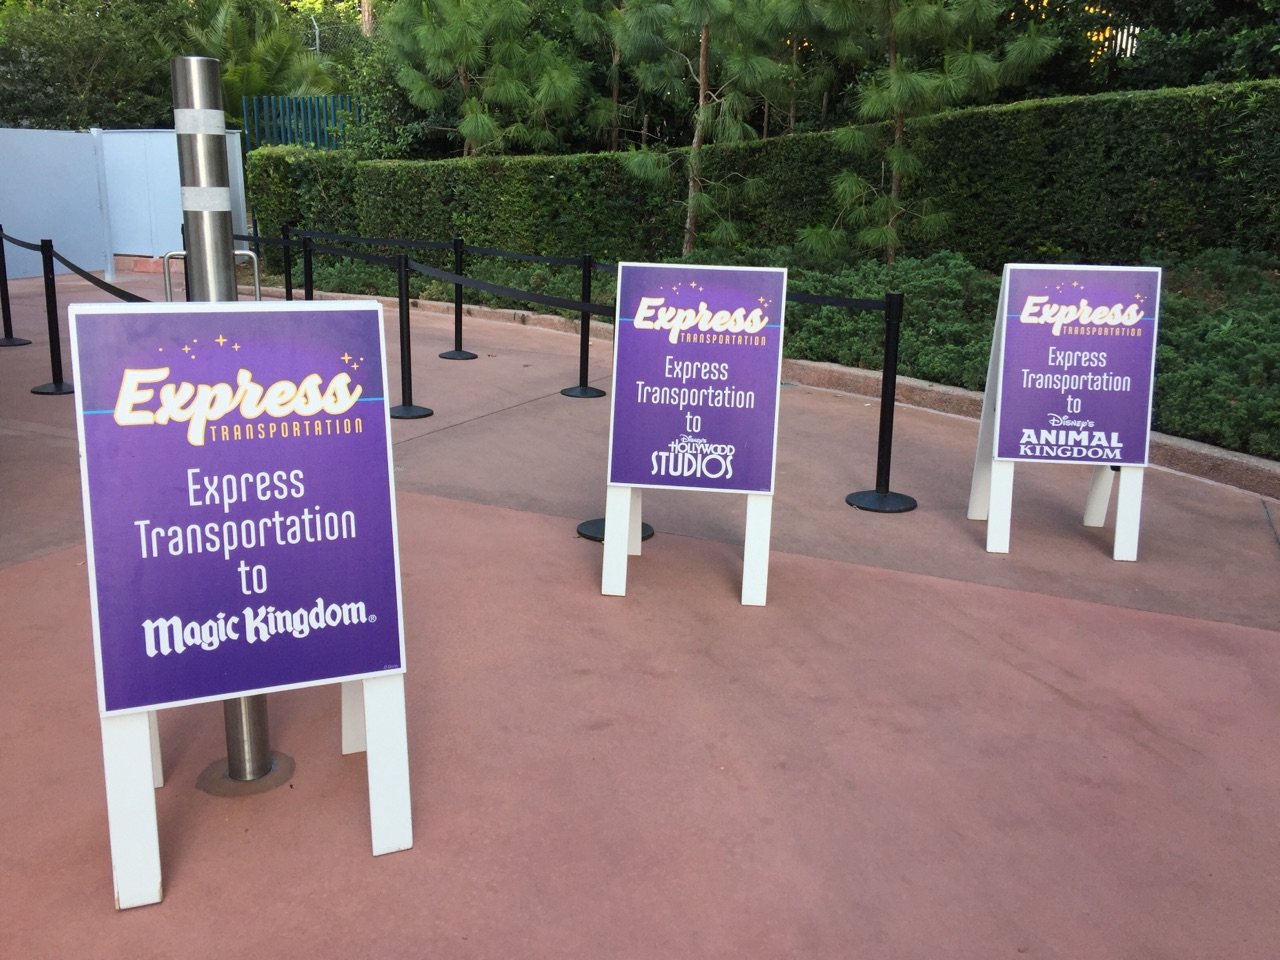 What You Need To Know About Disney World's Express Transportation Option